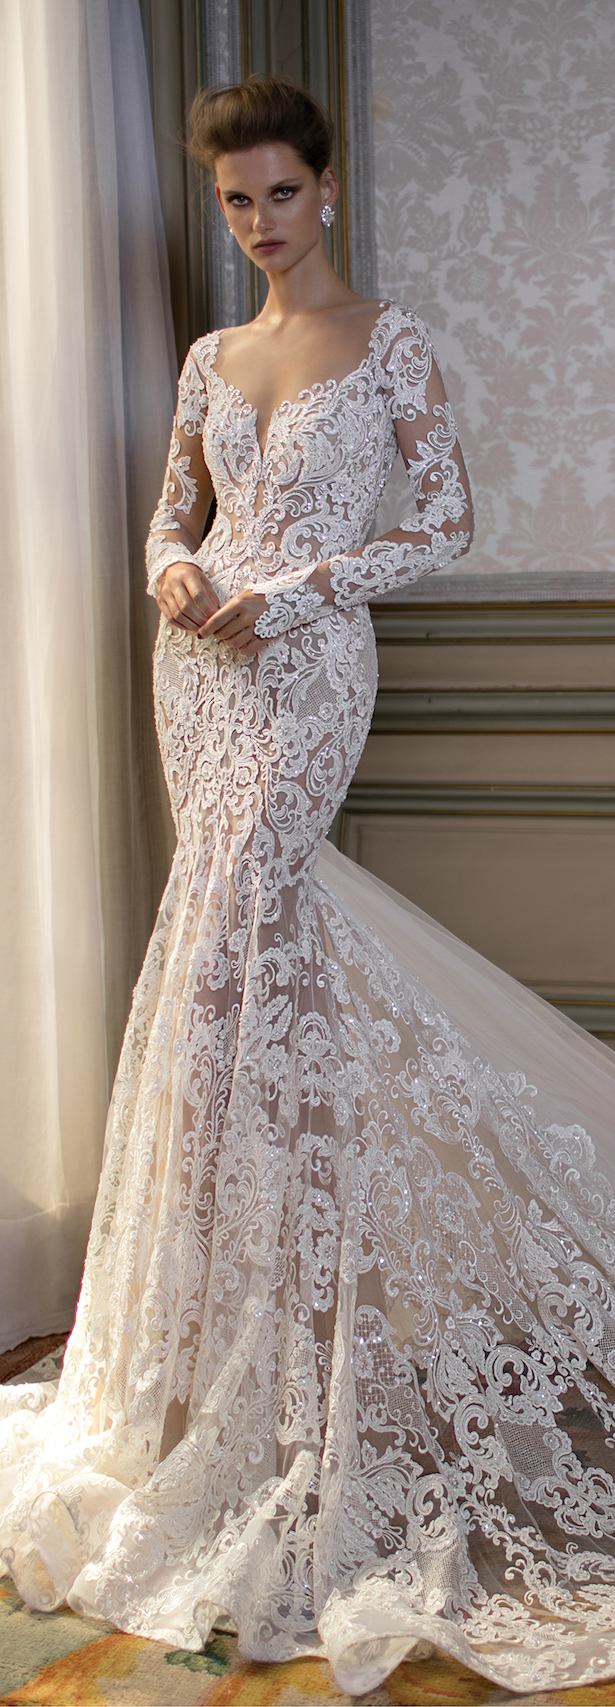 Berta bridal spring 2016 collection part 1 belle the for Where to buy berta wedding dresses